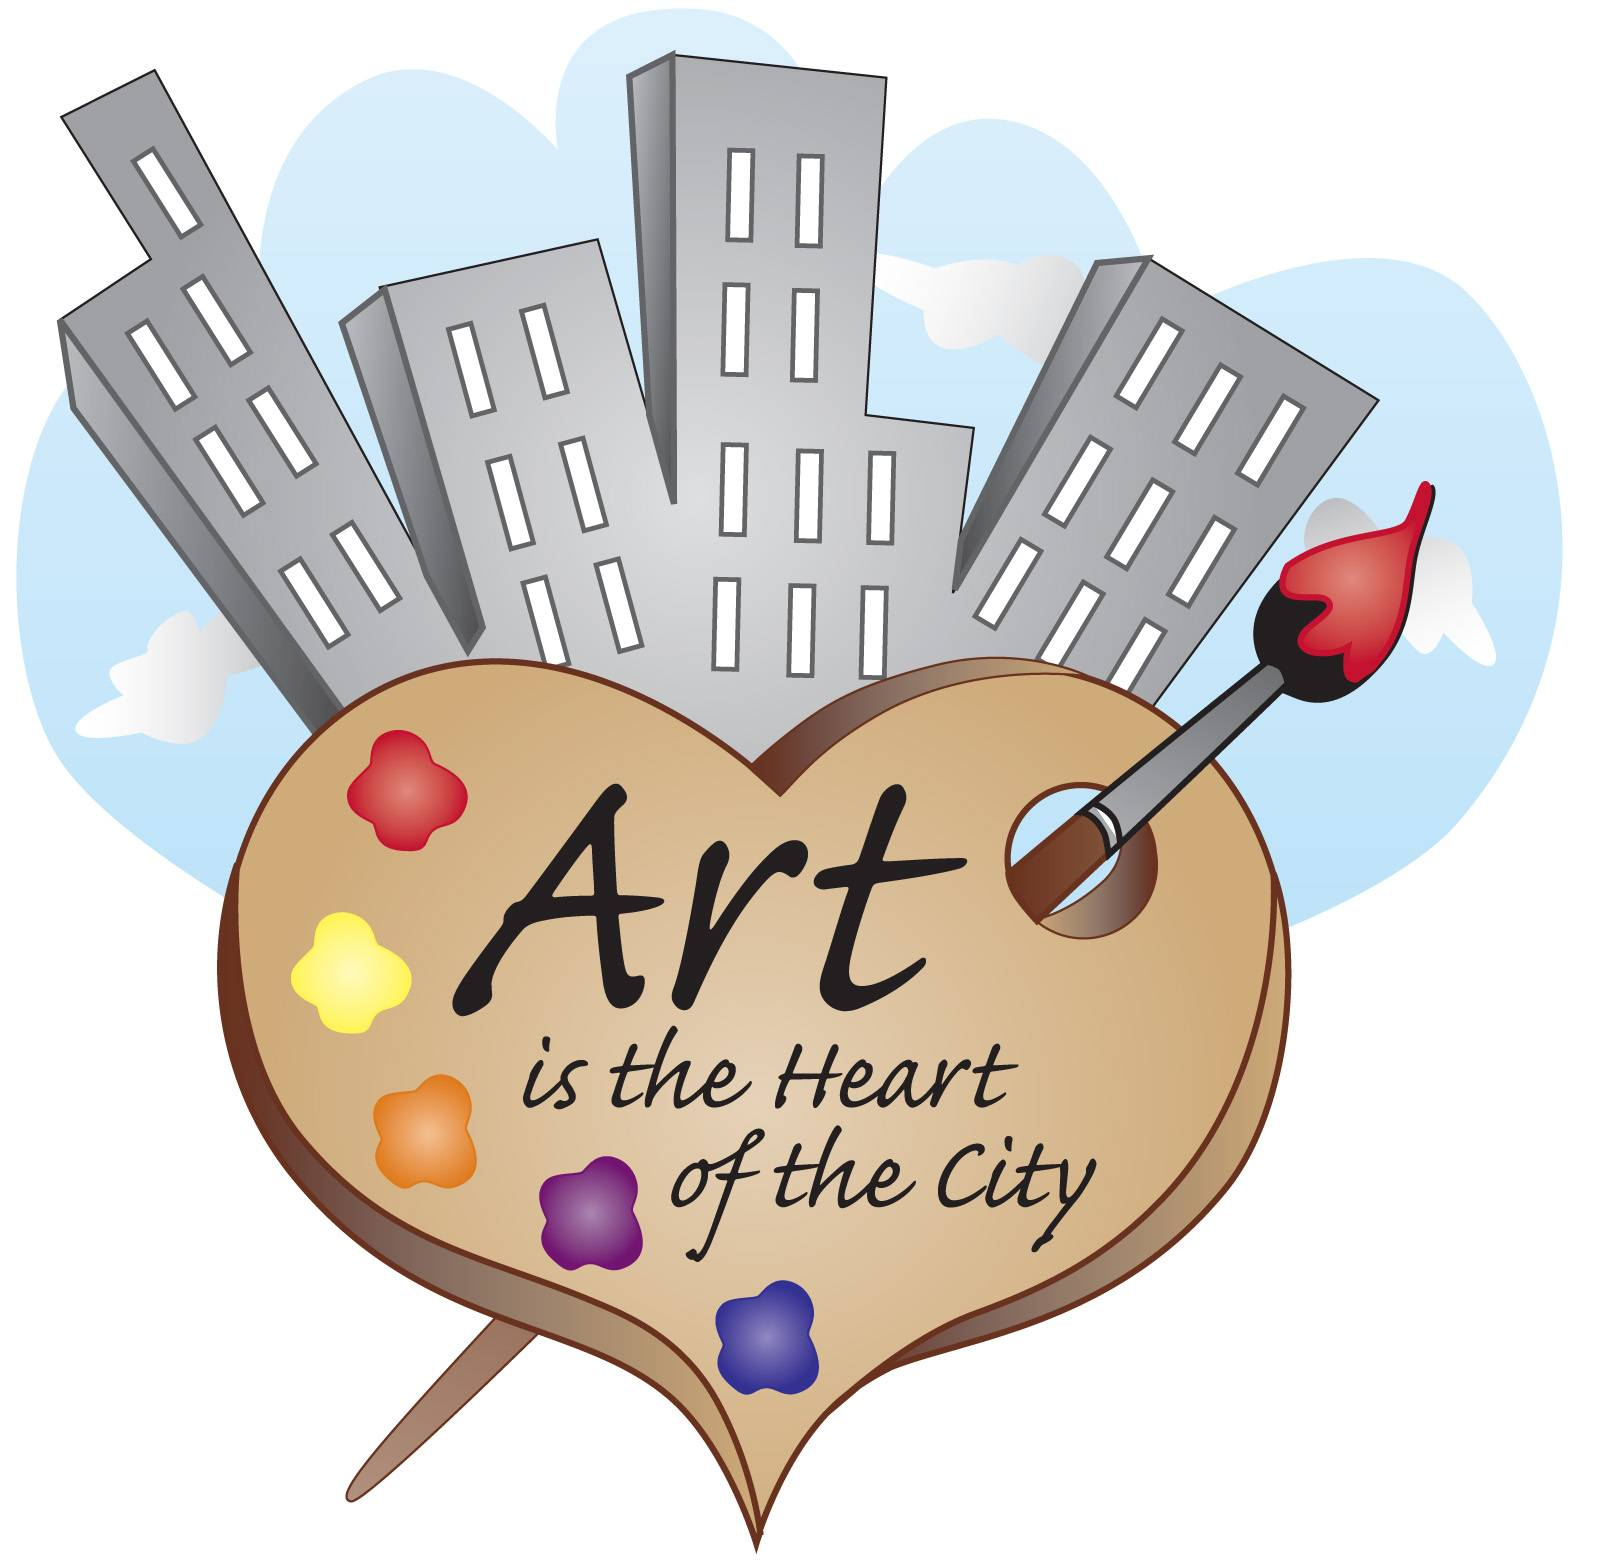 Created by Christine Cintula, art teacher of District 33, this logo for the upcoming show Art is the Heart of the City, captures the connection between students, art and their community.